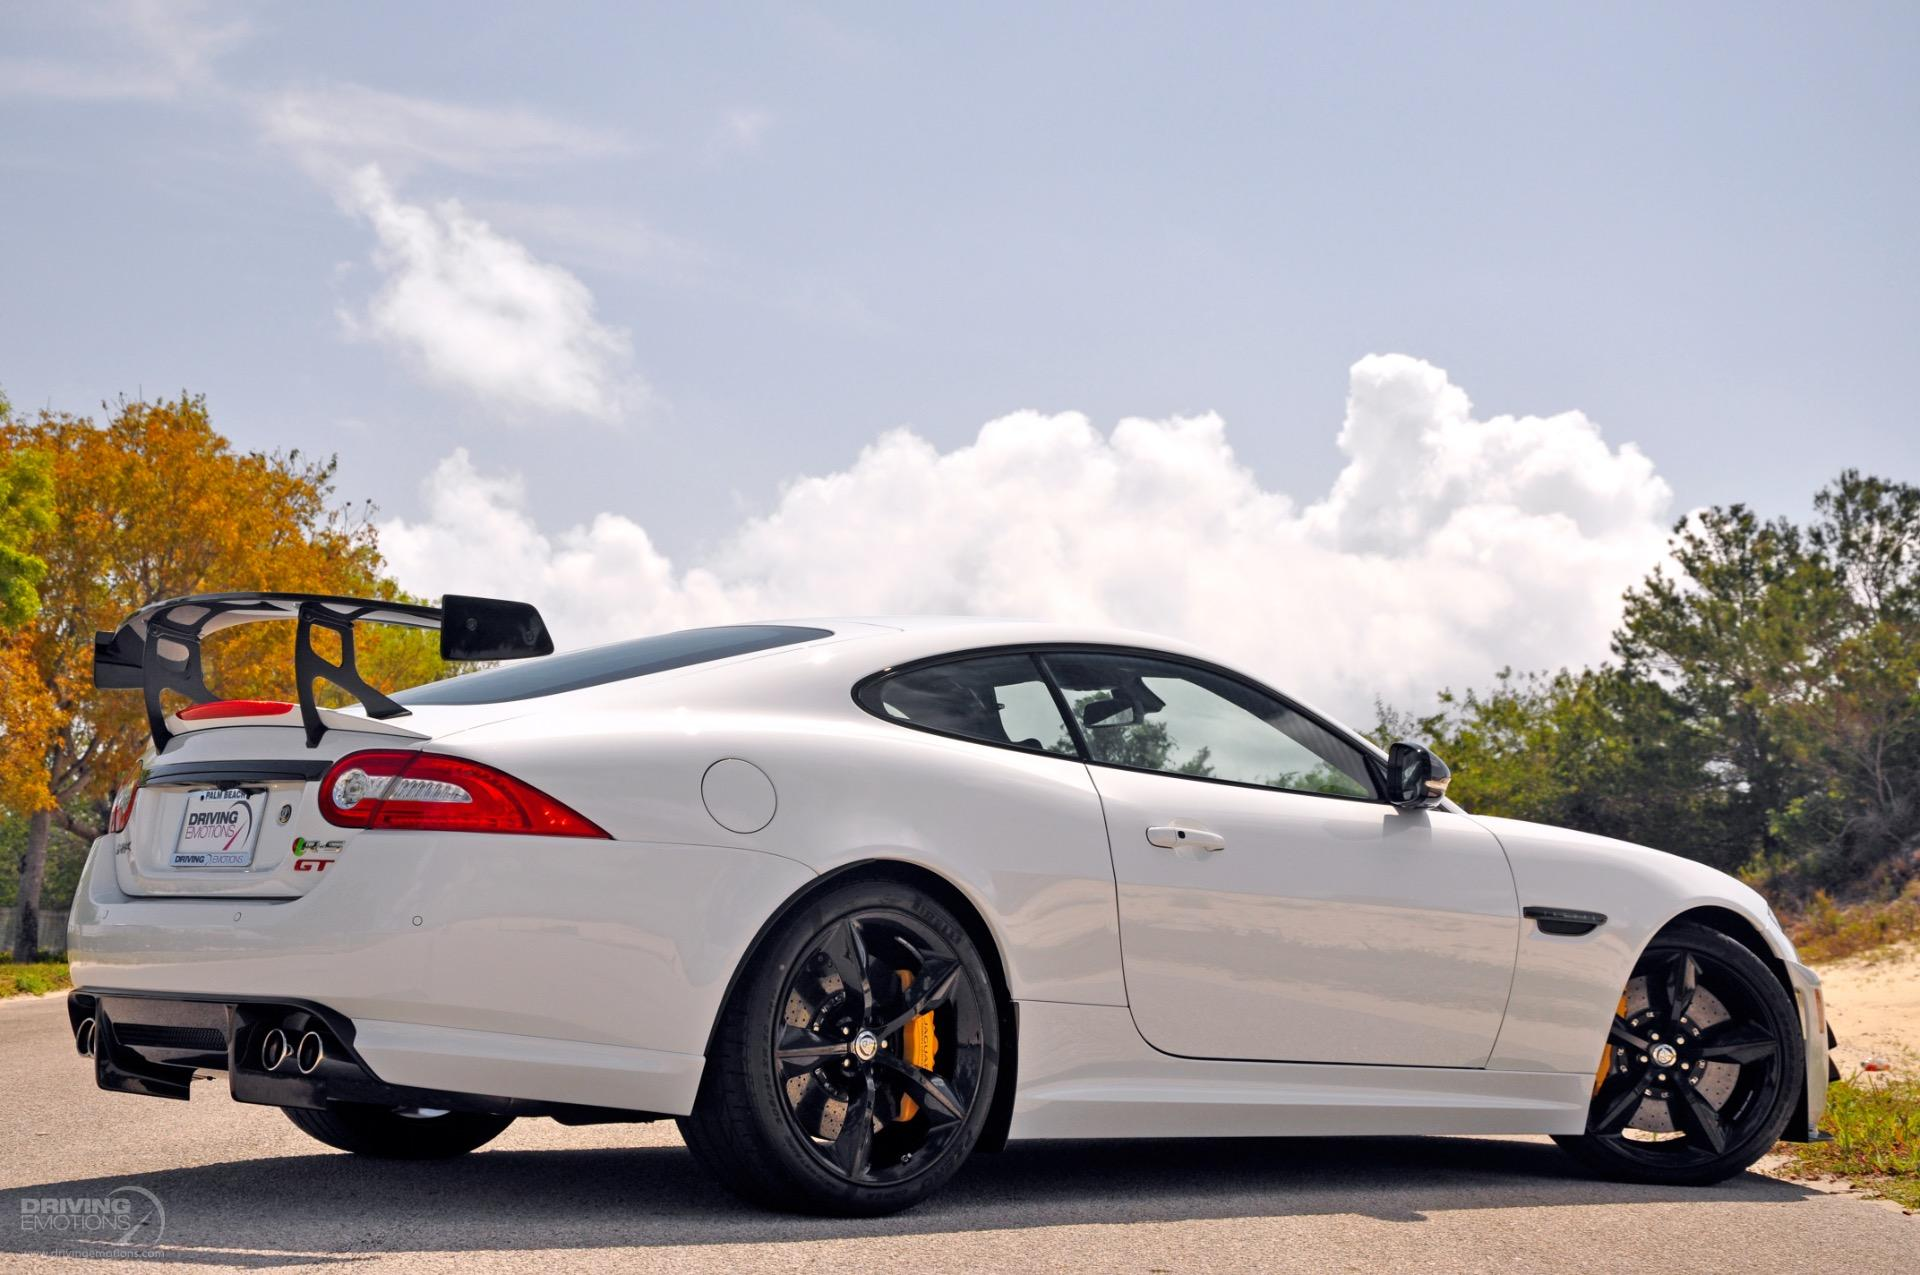 2014 jaguar xkr s gt xkr s gt stock 5949 for sale near. Black Bedroom Furniture Sets. Home Design Ideas